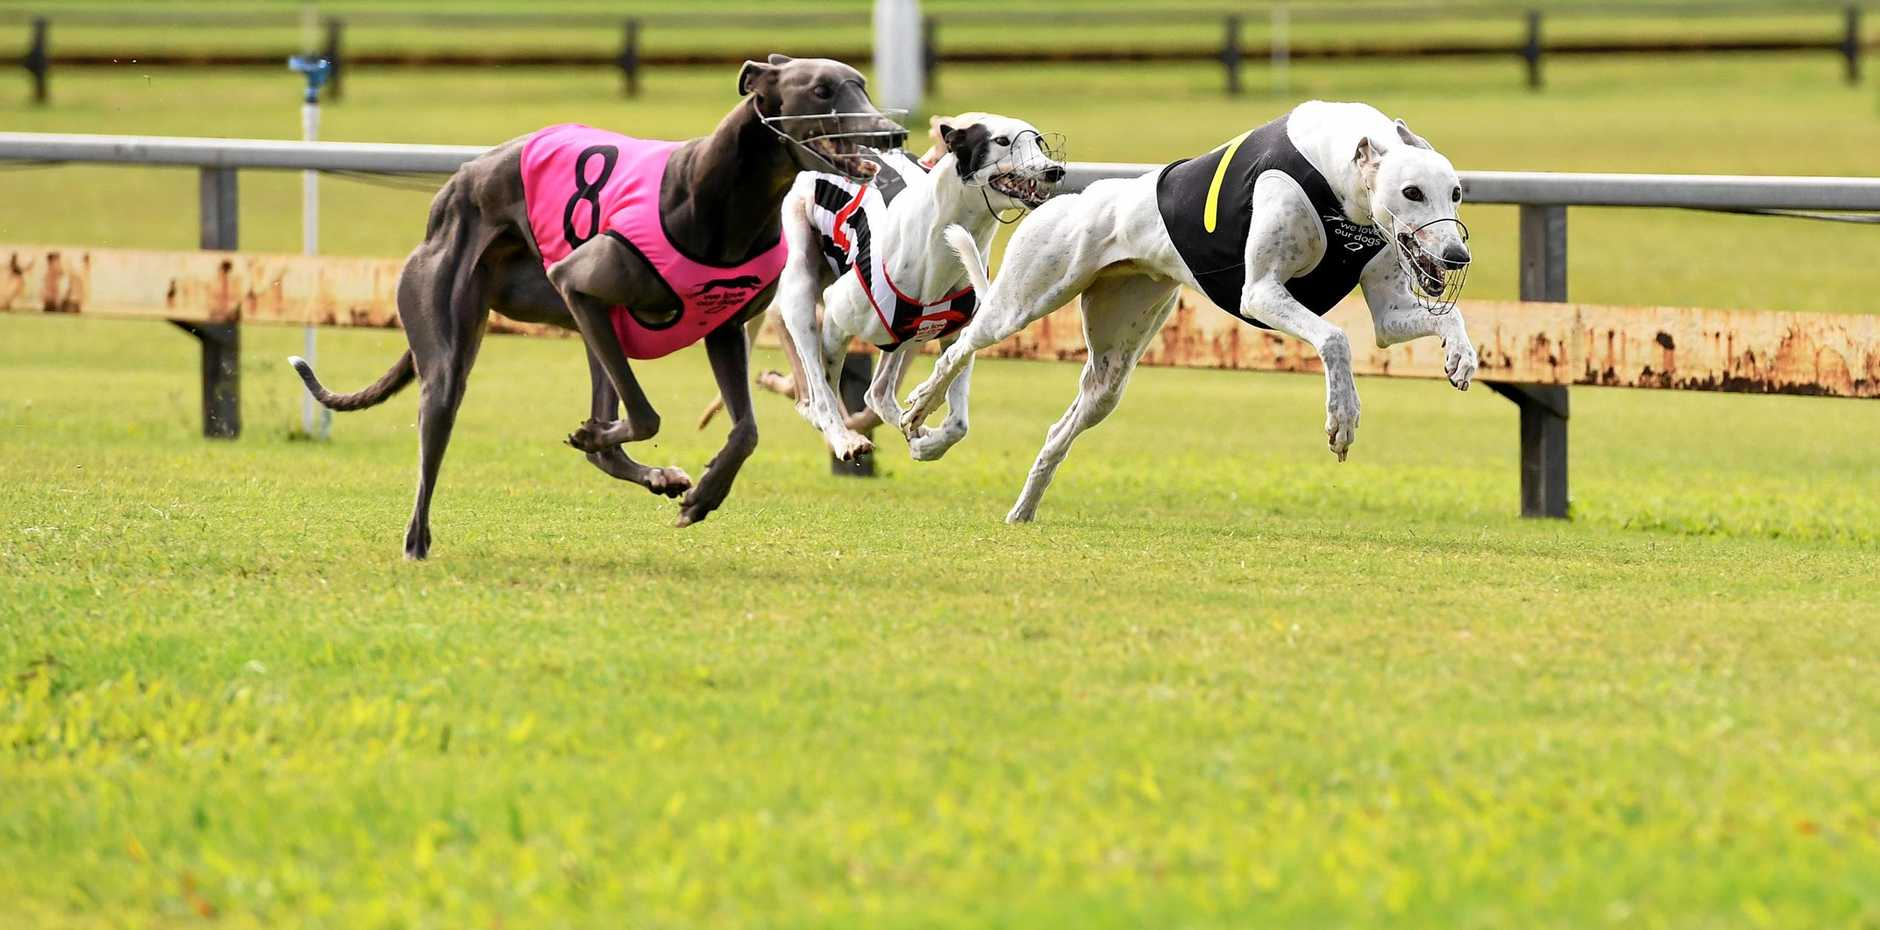 HISTORIC: Race one in Bundy was won by No. 8 Glamorous Pins, trained by Laurence Thomas.